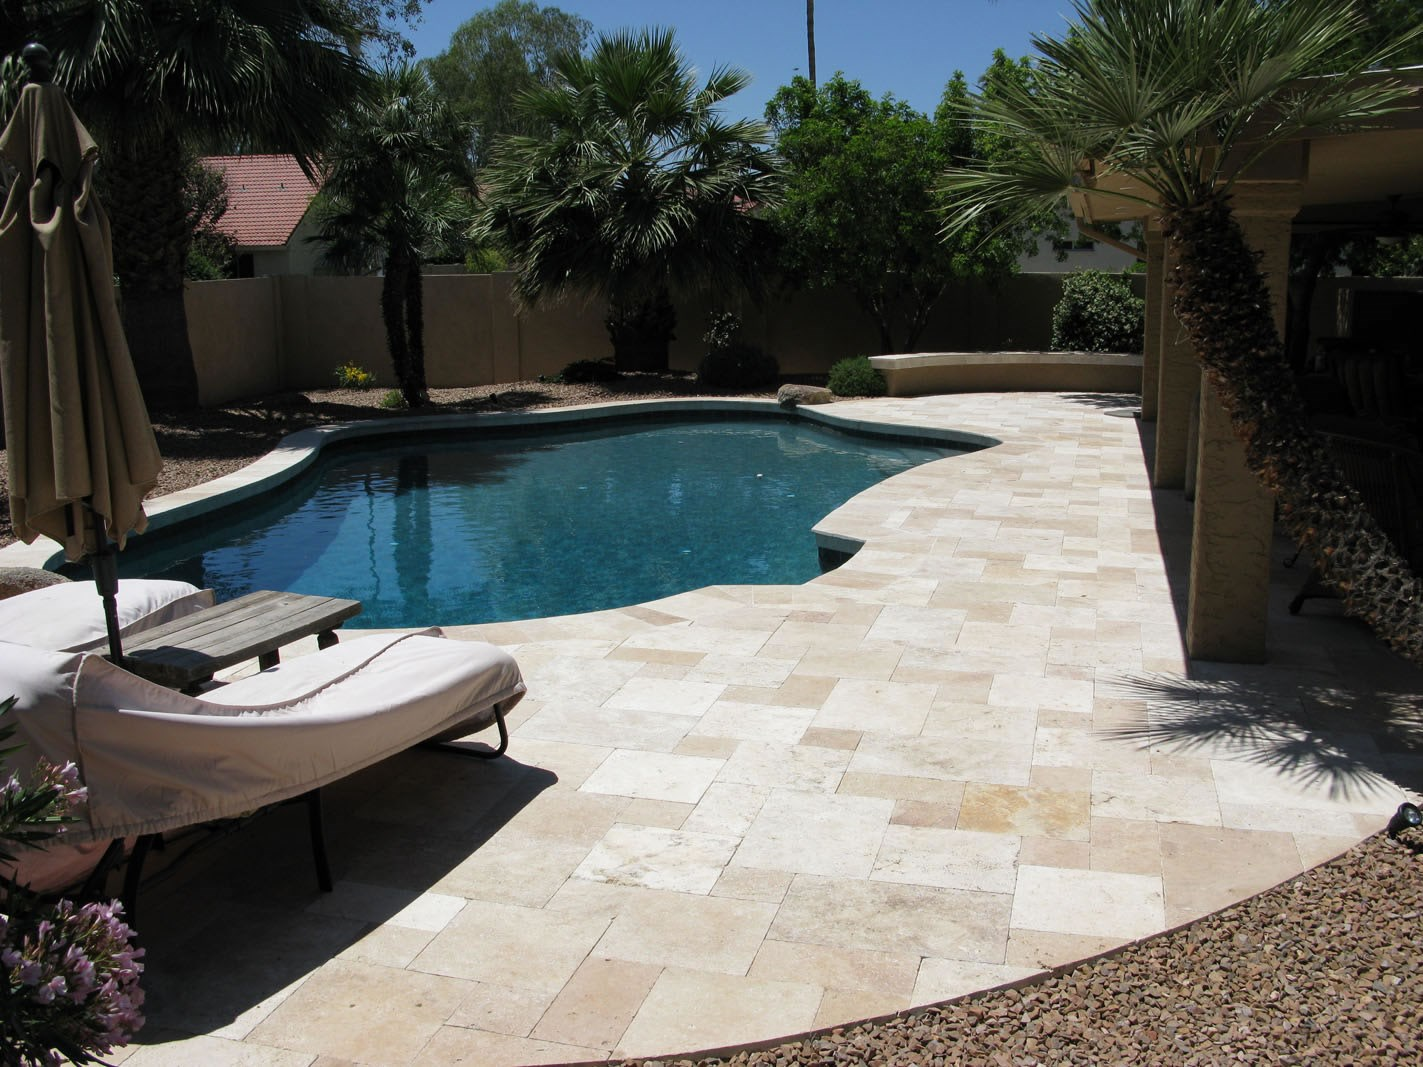 Travertine Pavers Offer Timeless Beauty